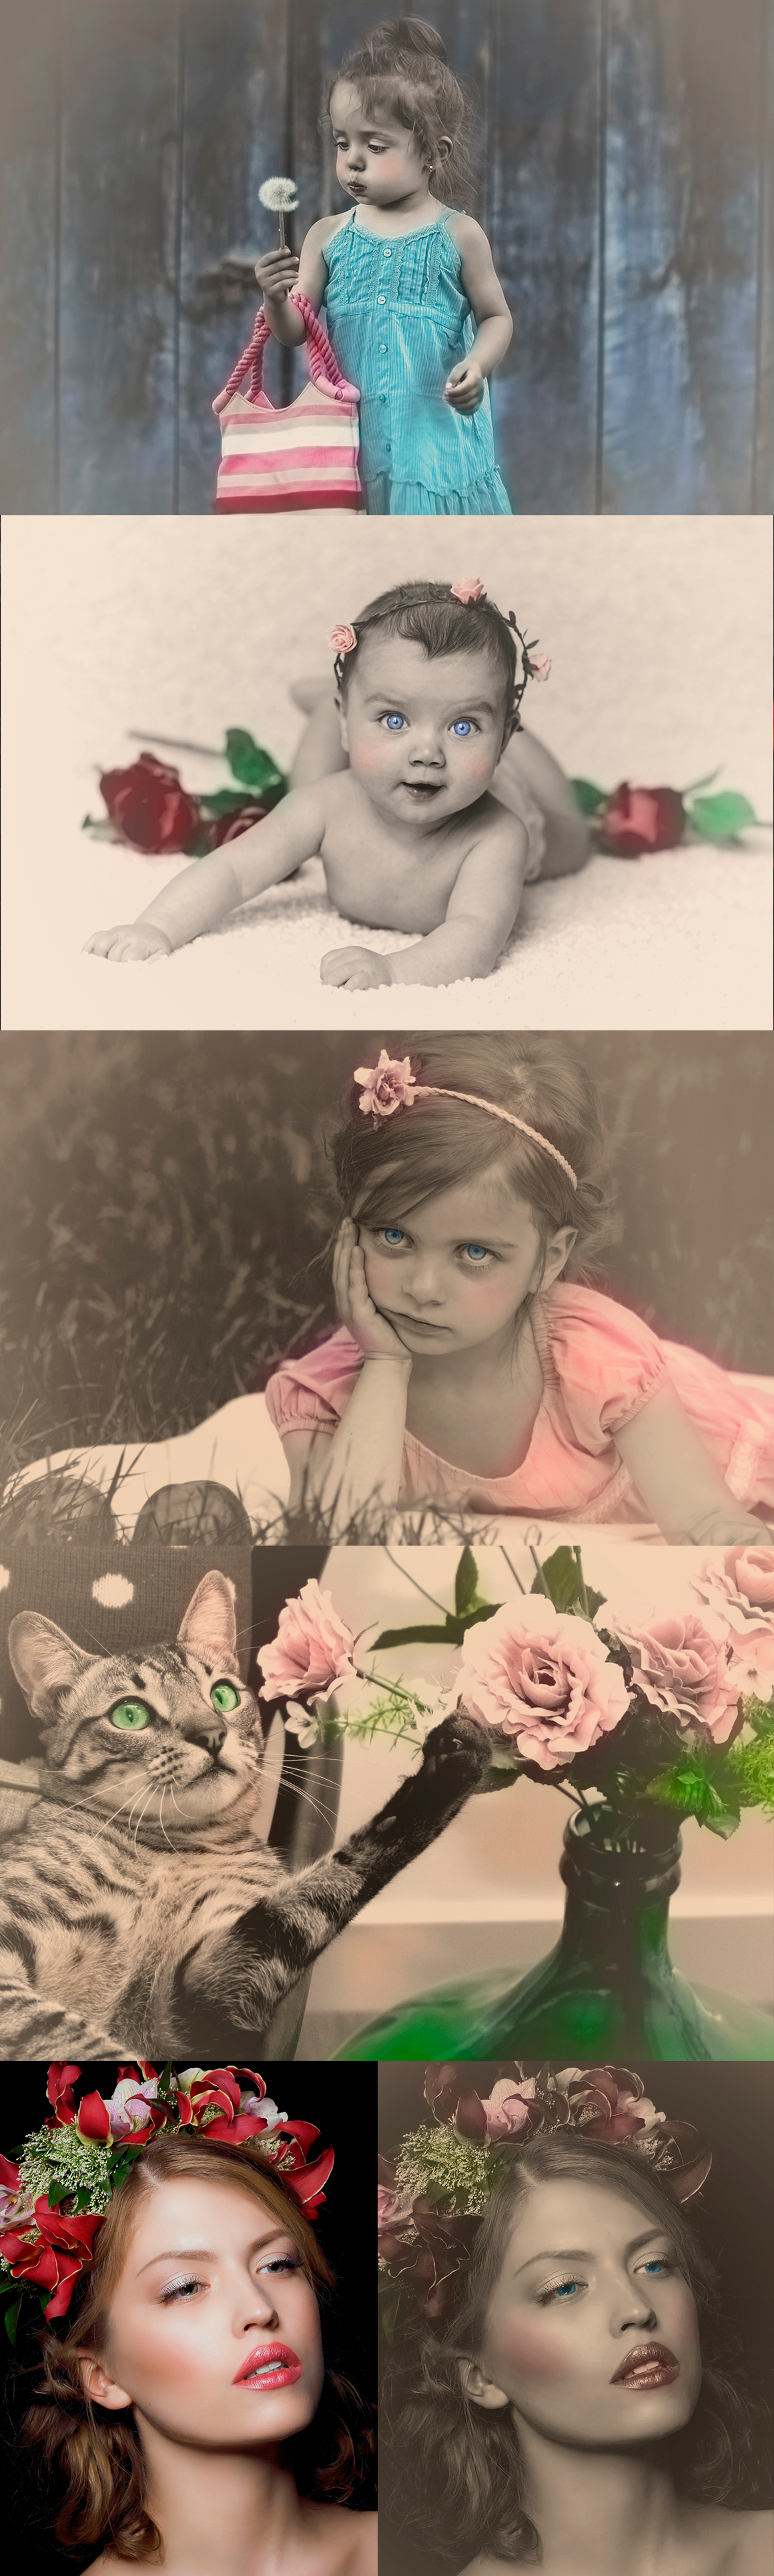 Colorized Old Photo Effects For Photoshop